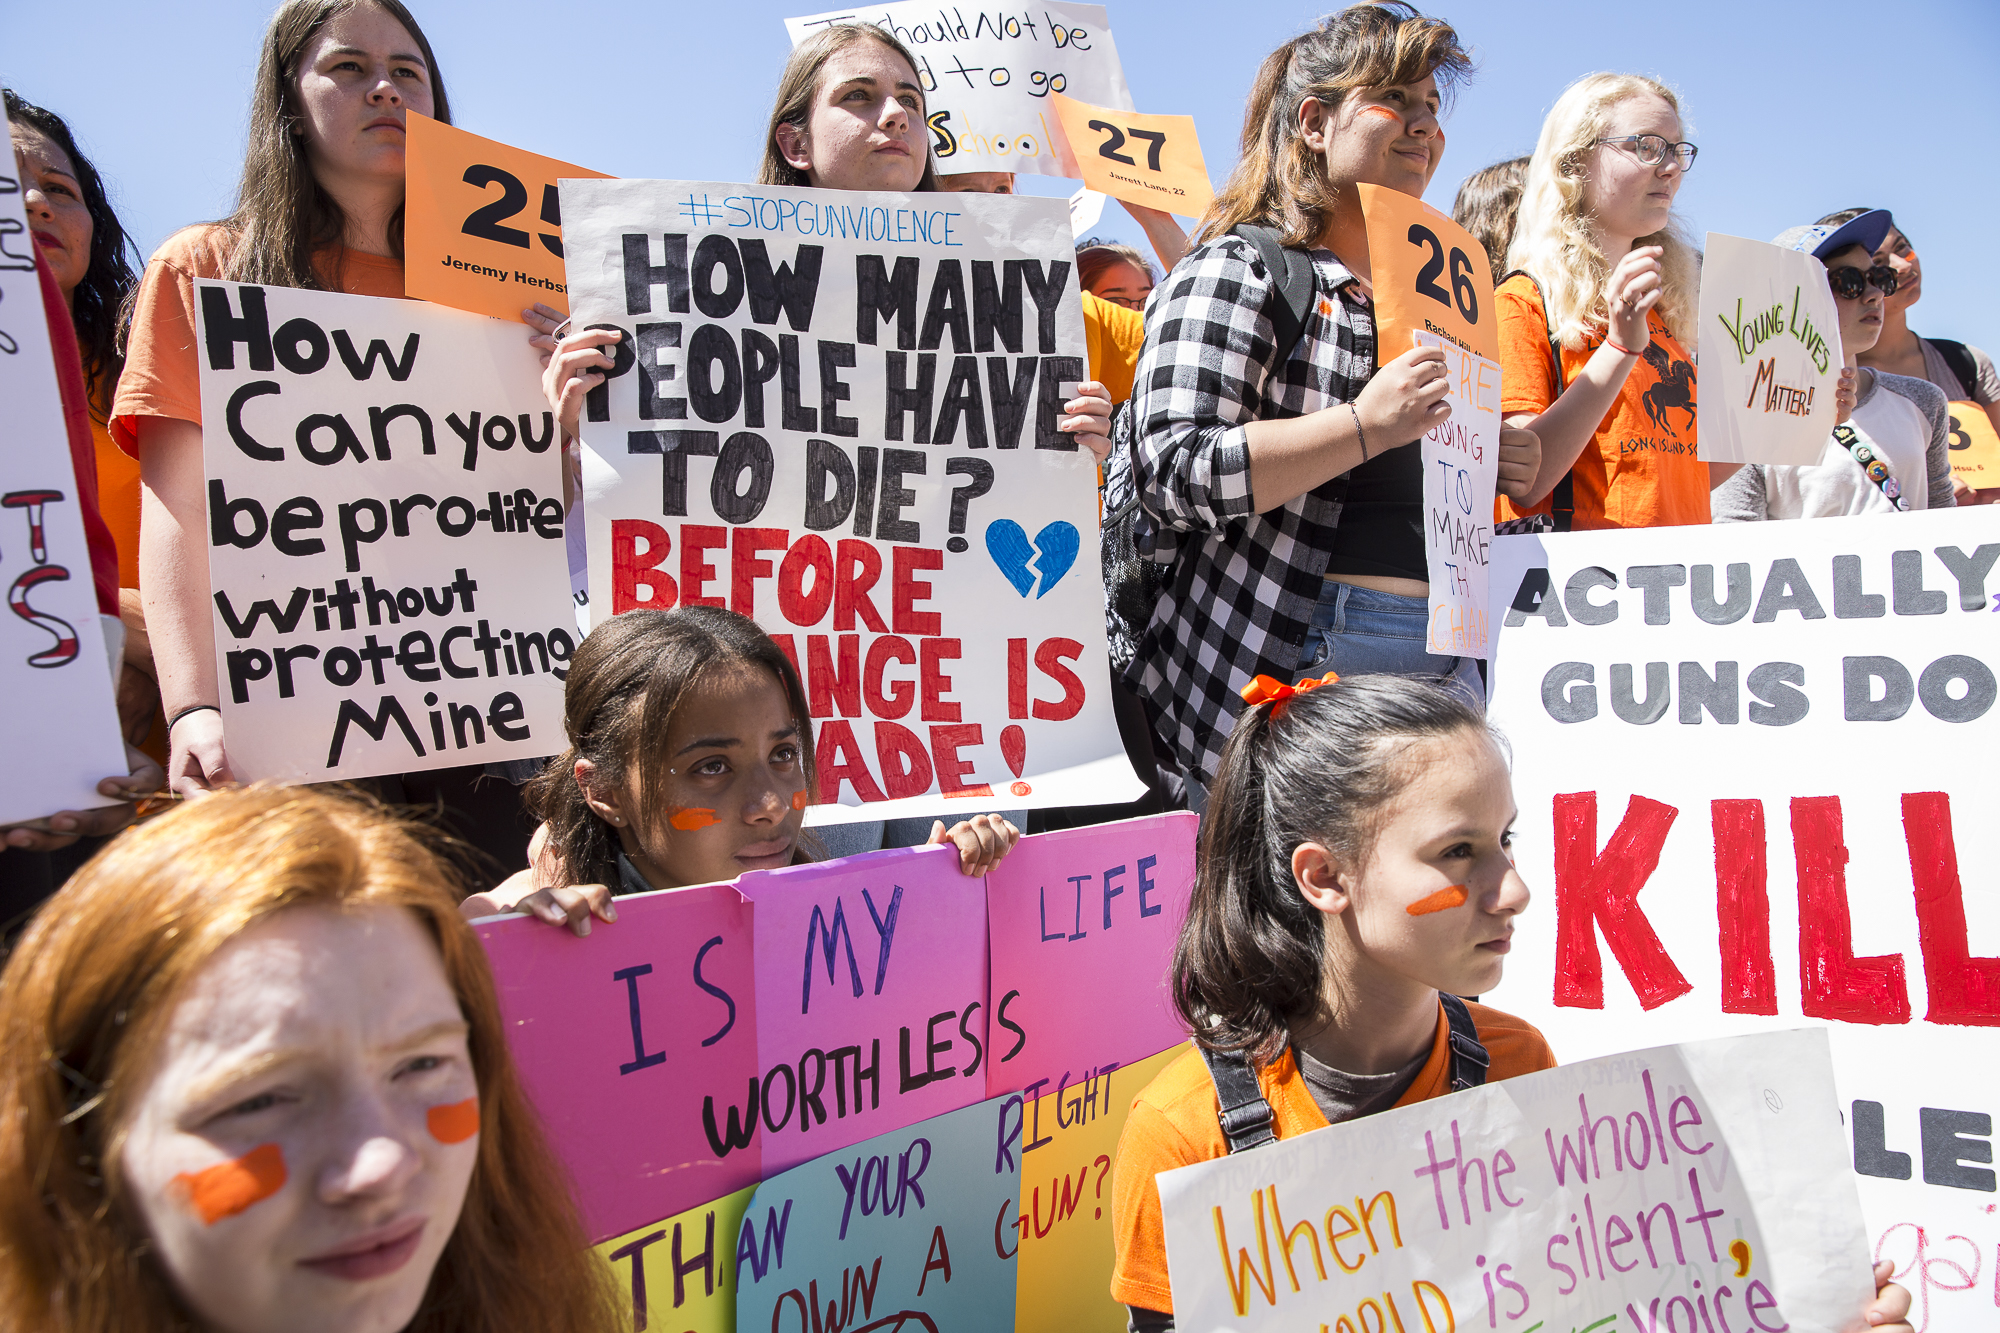 Young student activists from neighboring Santa Monica Middle Schools and High Schools hold up signs that express a desire for gun regulation while listening to key speakers during a student walkout that converged at Santa Monica City Hall in Santa Monica, California on Friday, April 20 2018. The student walkout marked the 19th anniversary of the Columbine High School massacre shooting and walkouts took place across the country so students could express their desire for a change in gun legislation. (Matthew Martin/Corsair Photo)